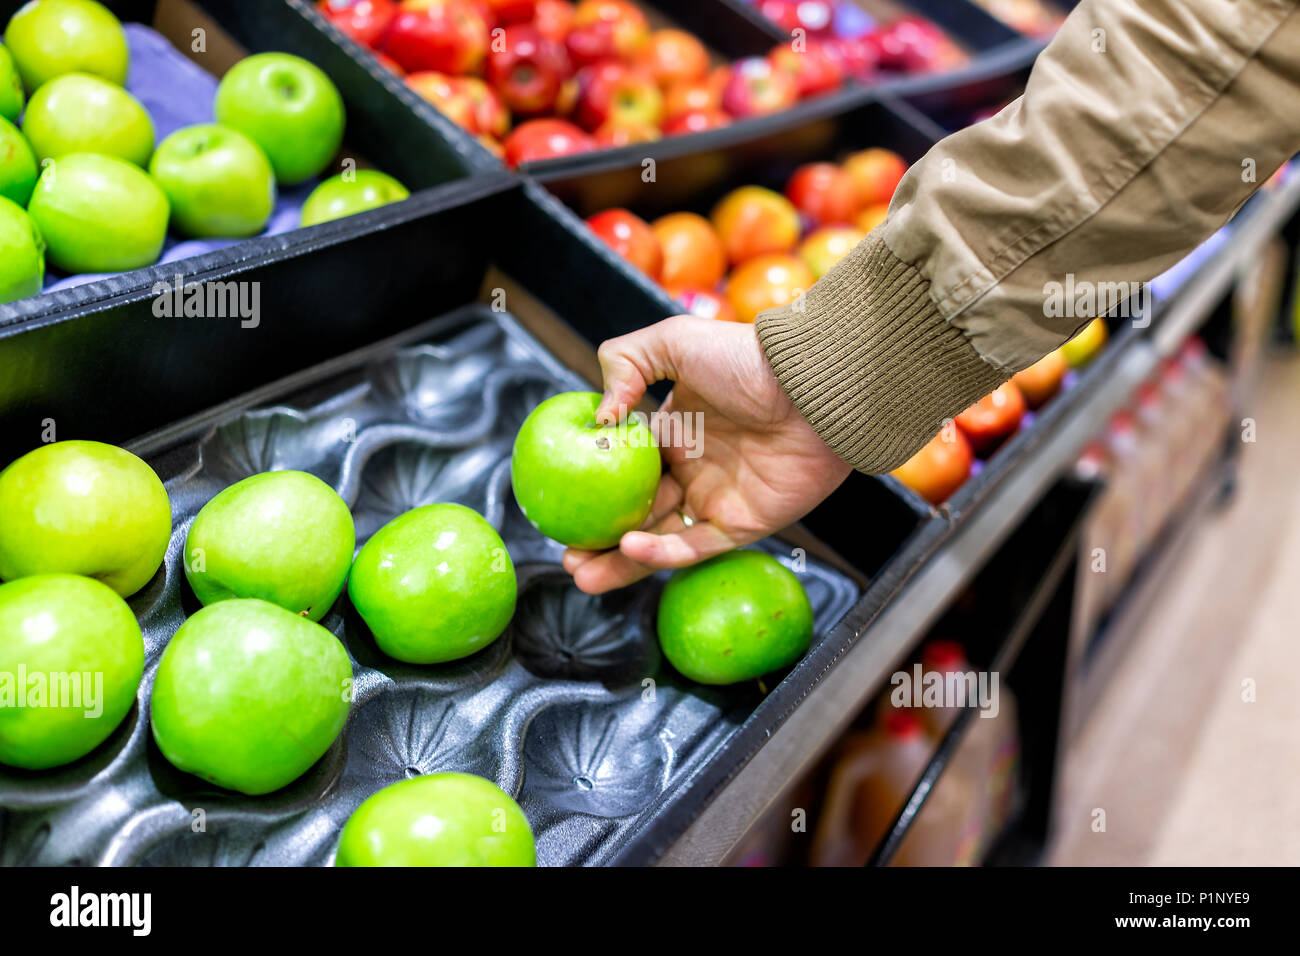 Green assorted apples on display shelf in grocery store boxes in aisle, supermarket inside, man person customer touching with hand holding granny smit - Stock Image